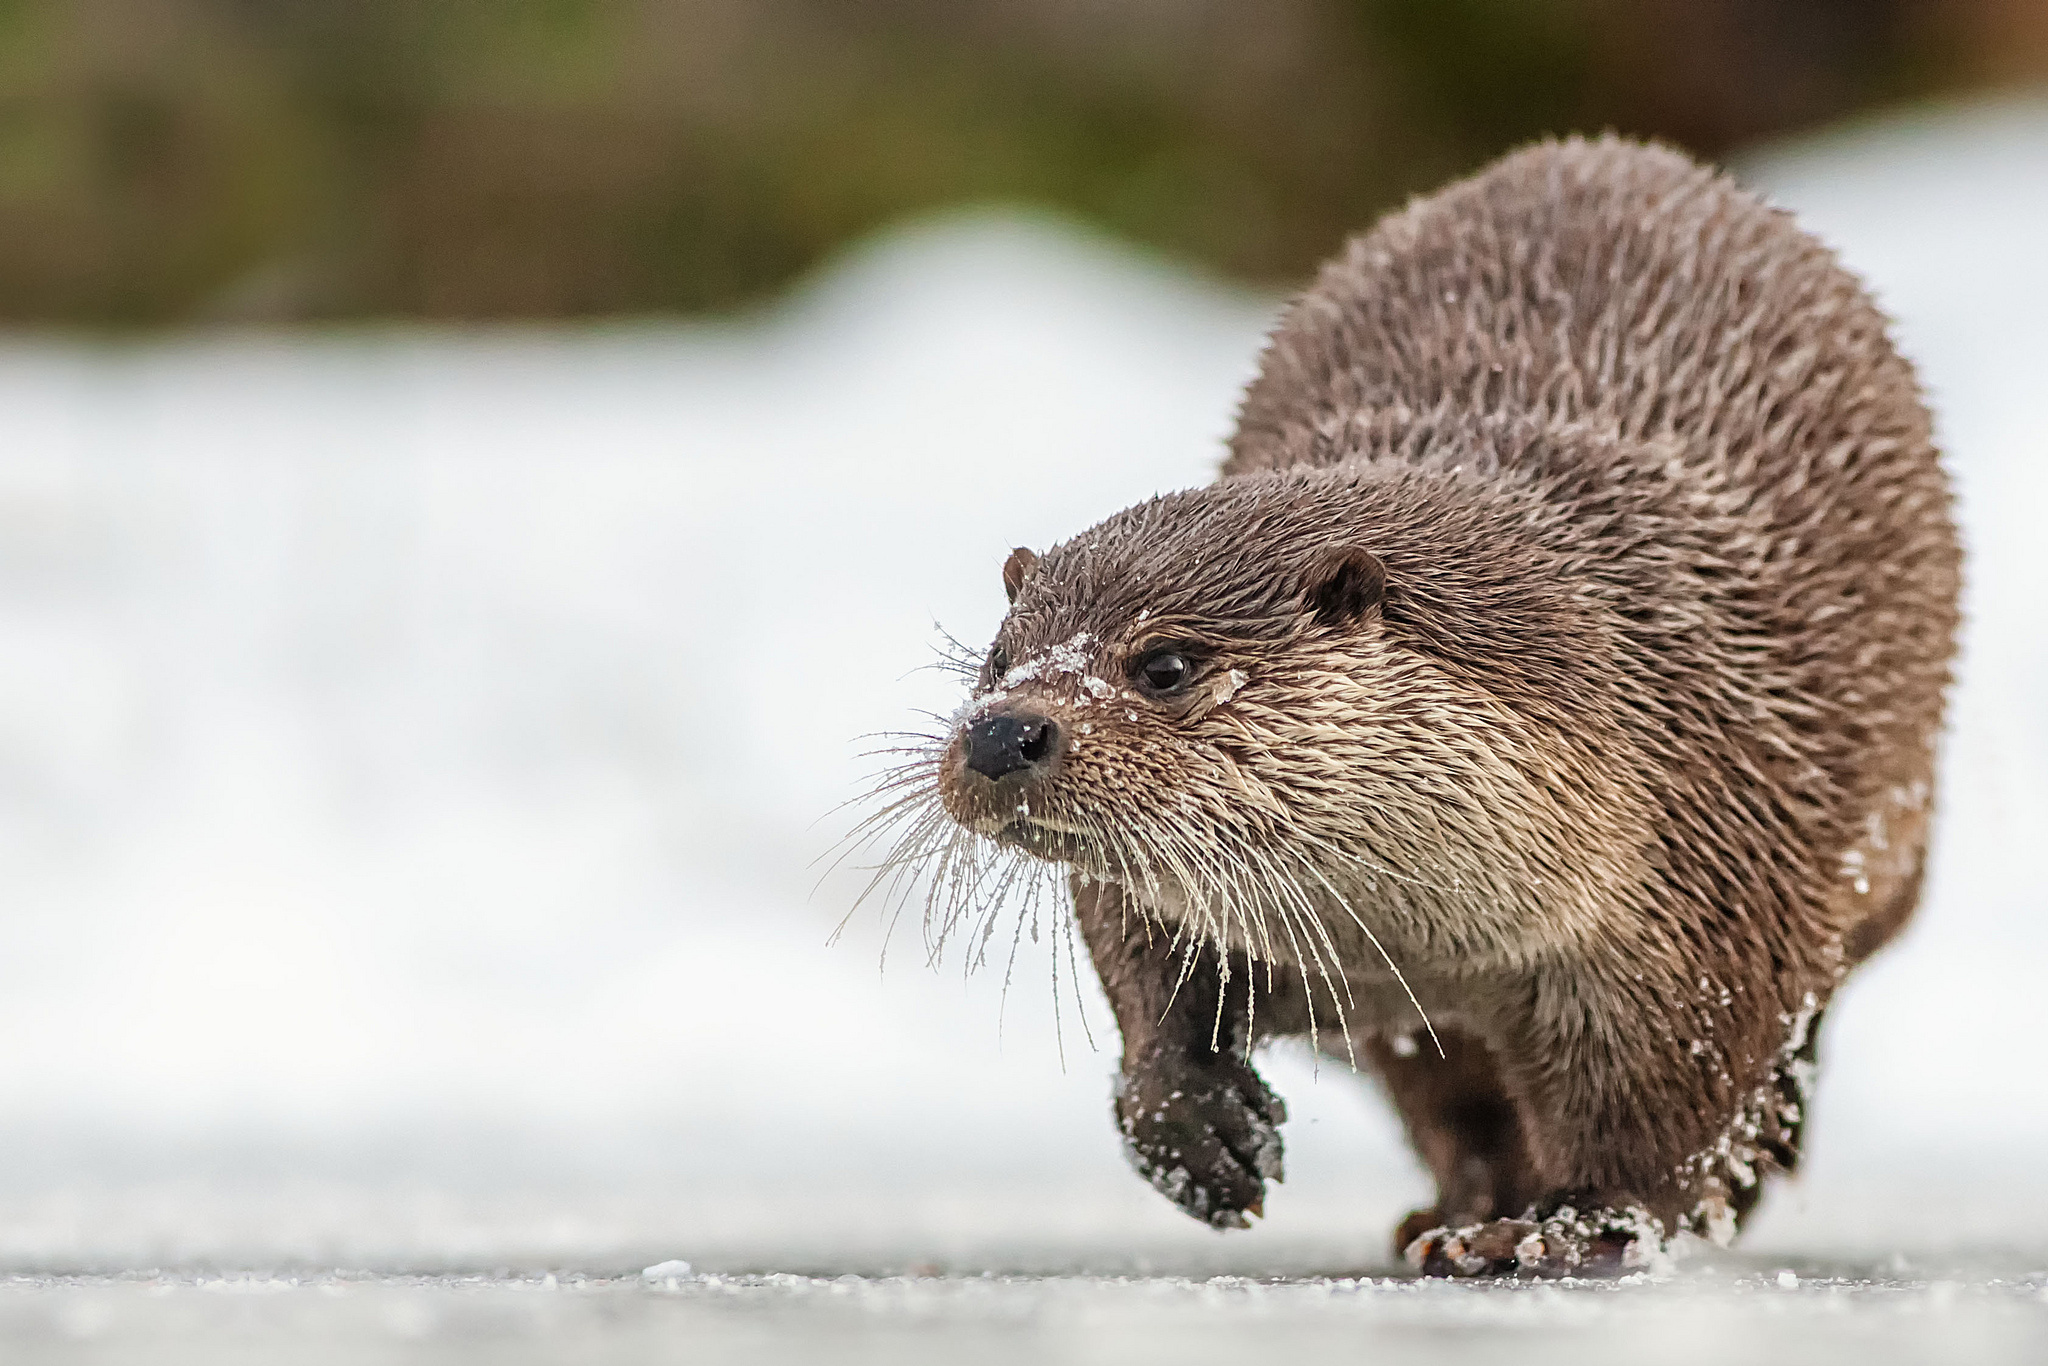 Cute Otter Wallpaper Otter Full Hd Wallpaper And Background Image 2048x1366